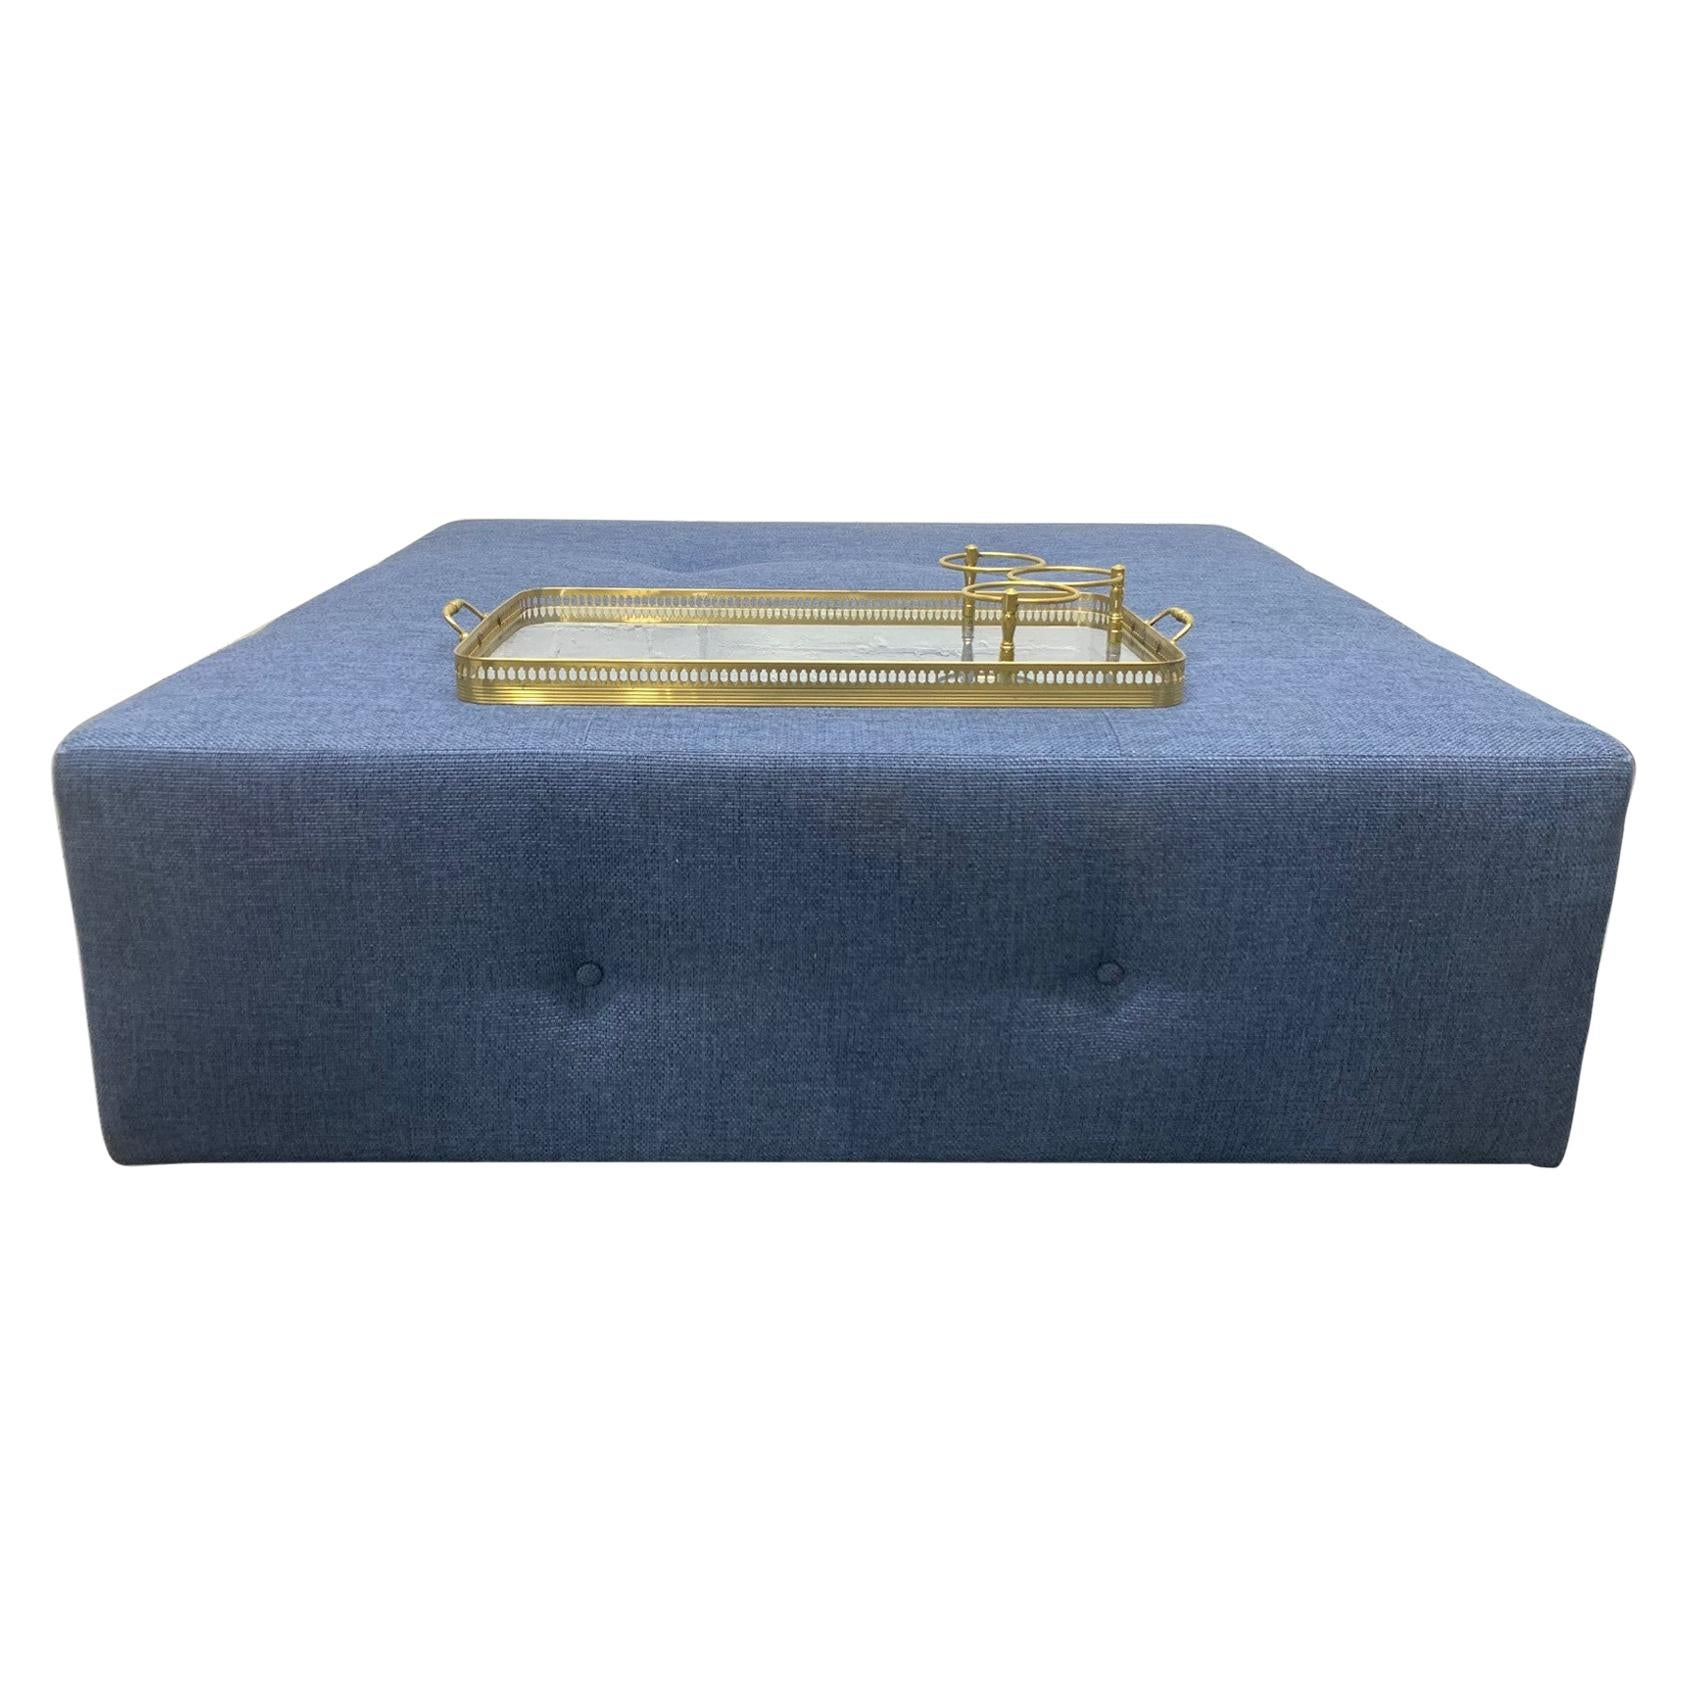 Large-Scale Custom Designed Tufted Ottoman with Brass Serving Tray